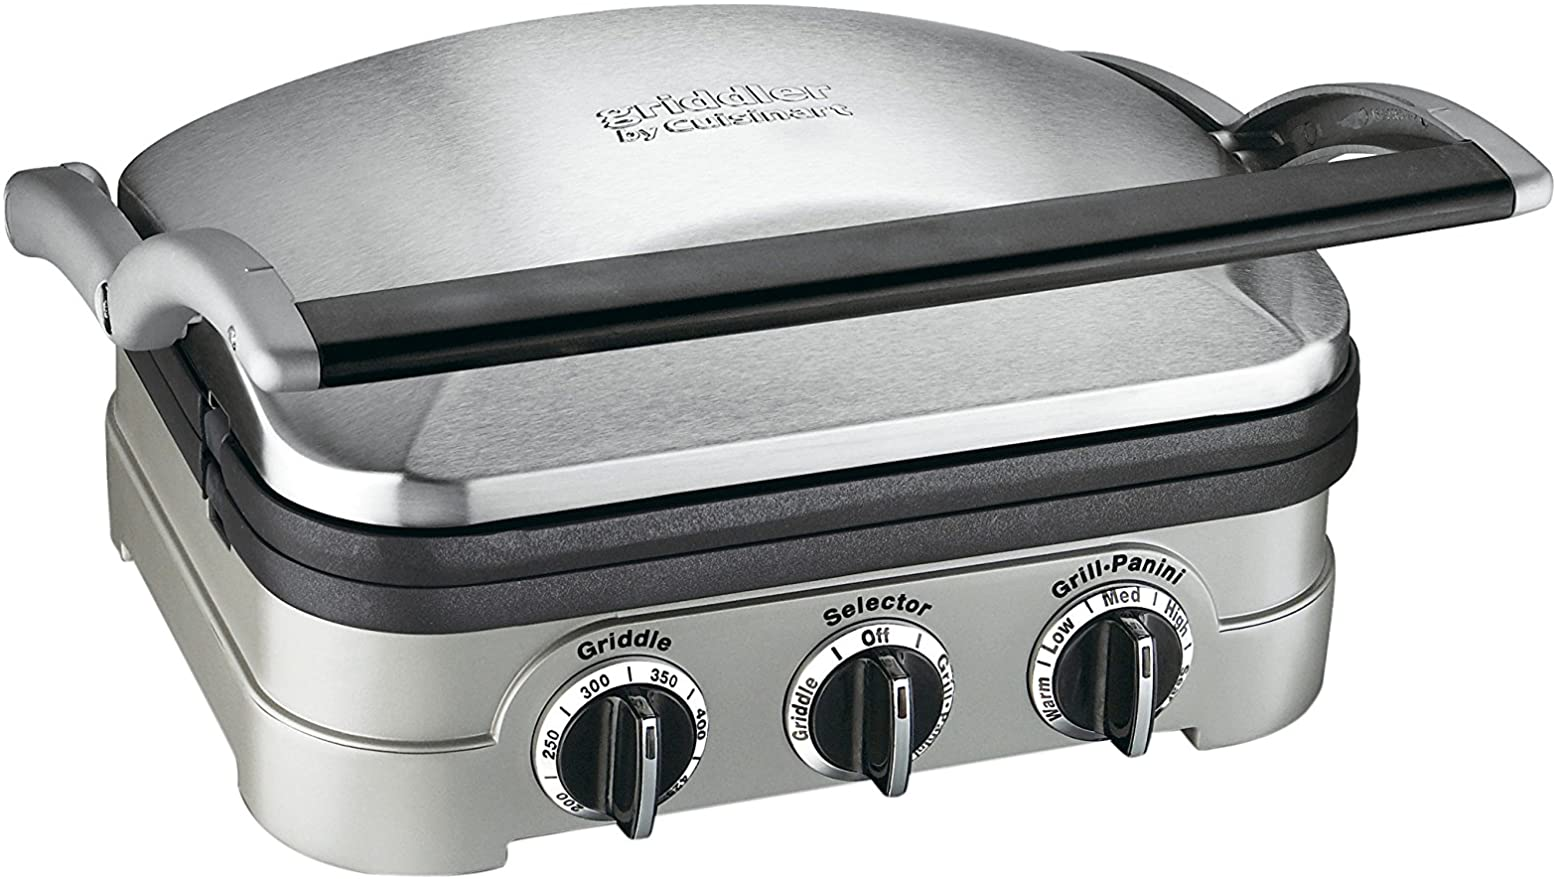 Cuisinart GR-4NP1 product image 3